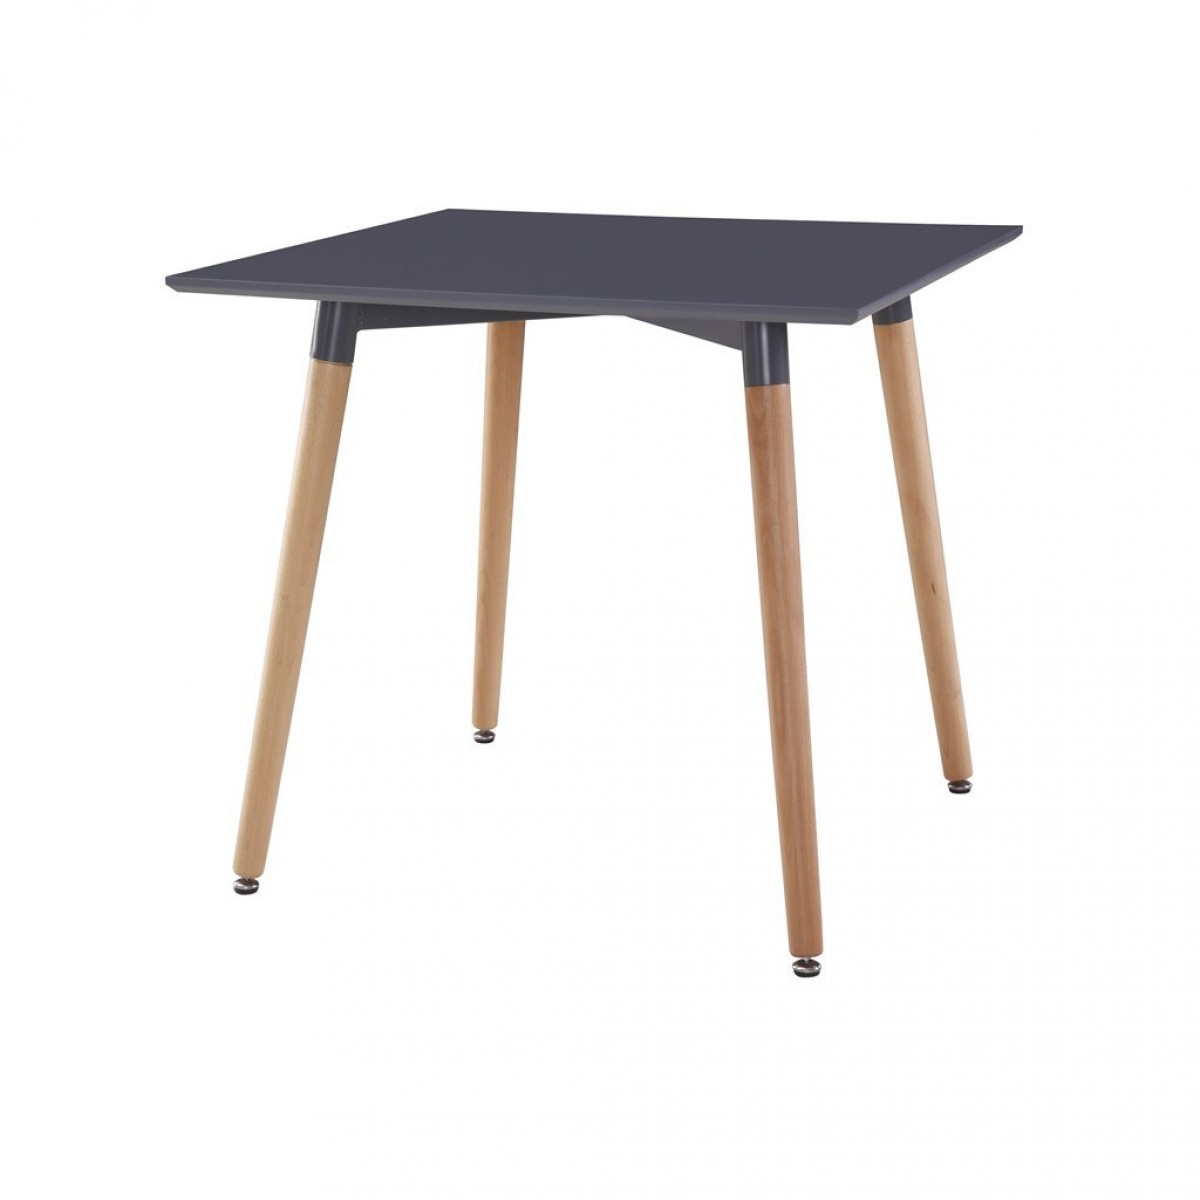 Table carr e scandinave grise les douces nuits de ma for Table scandinave carree